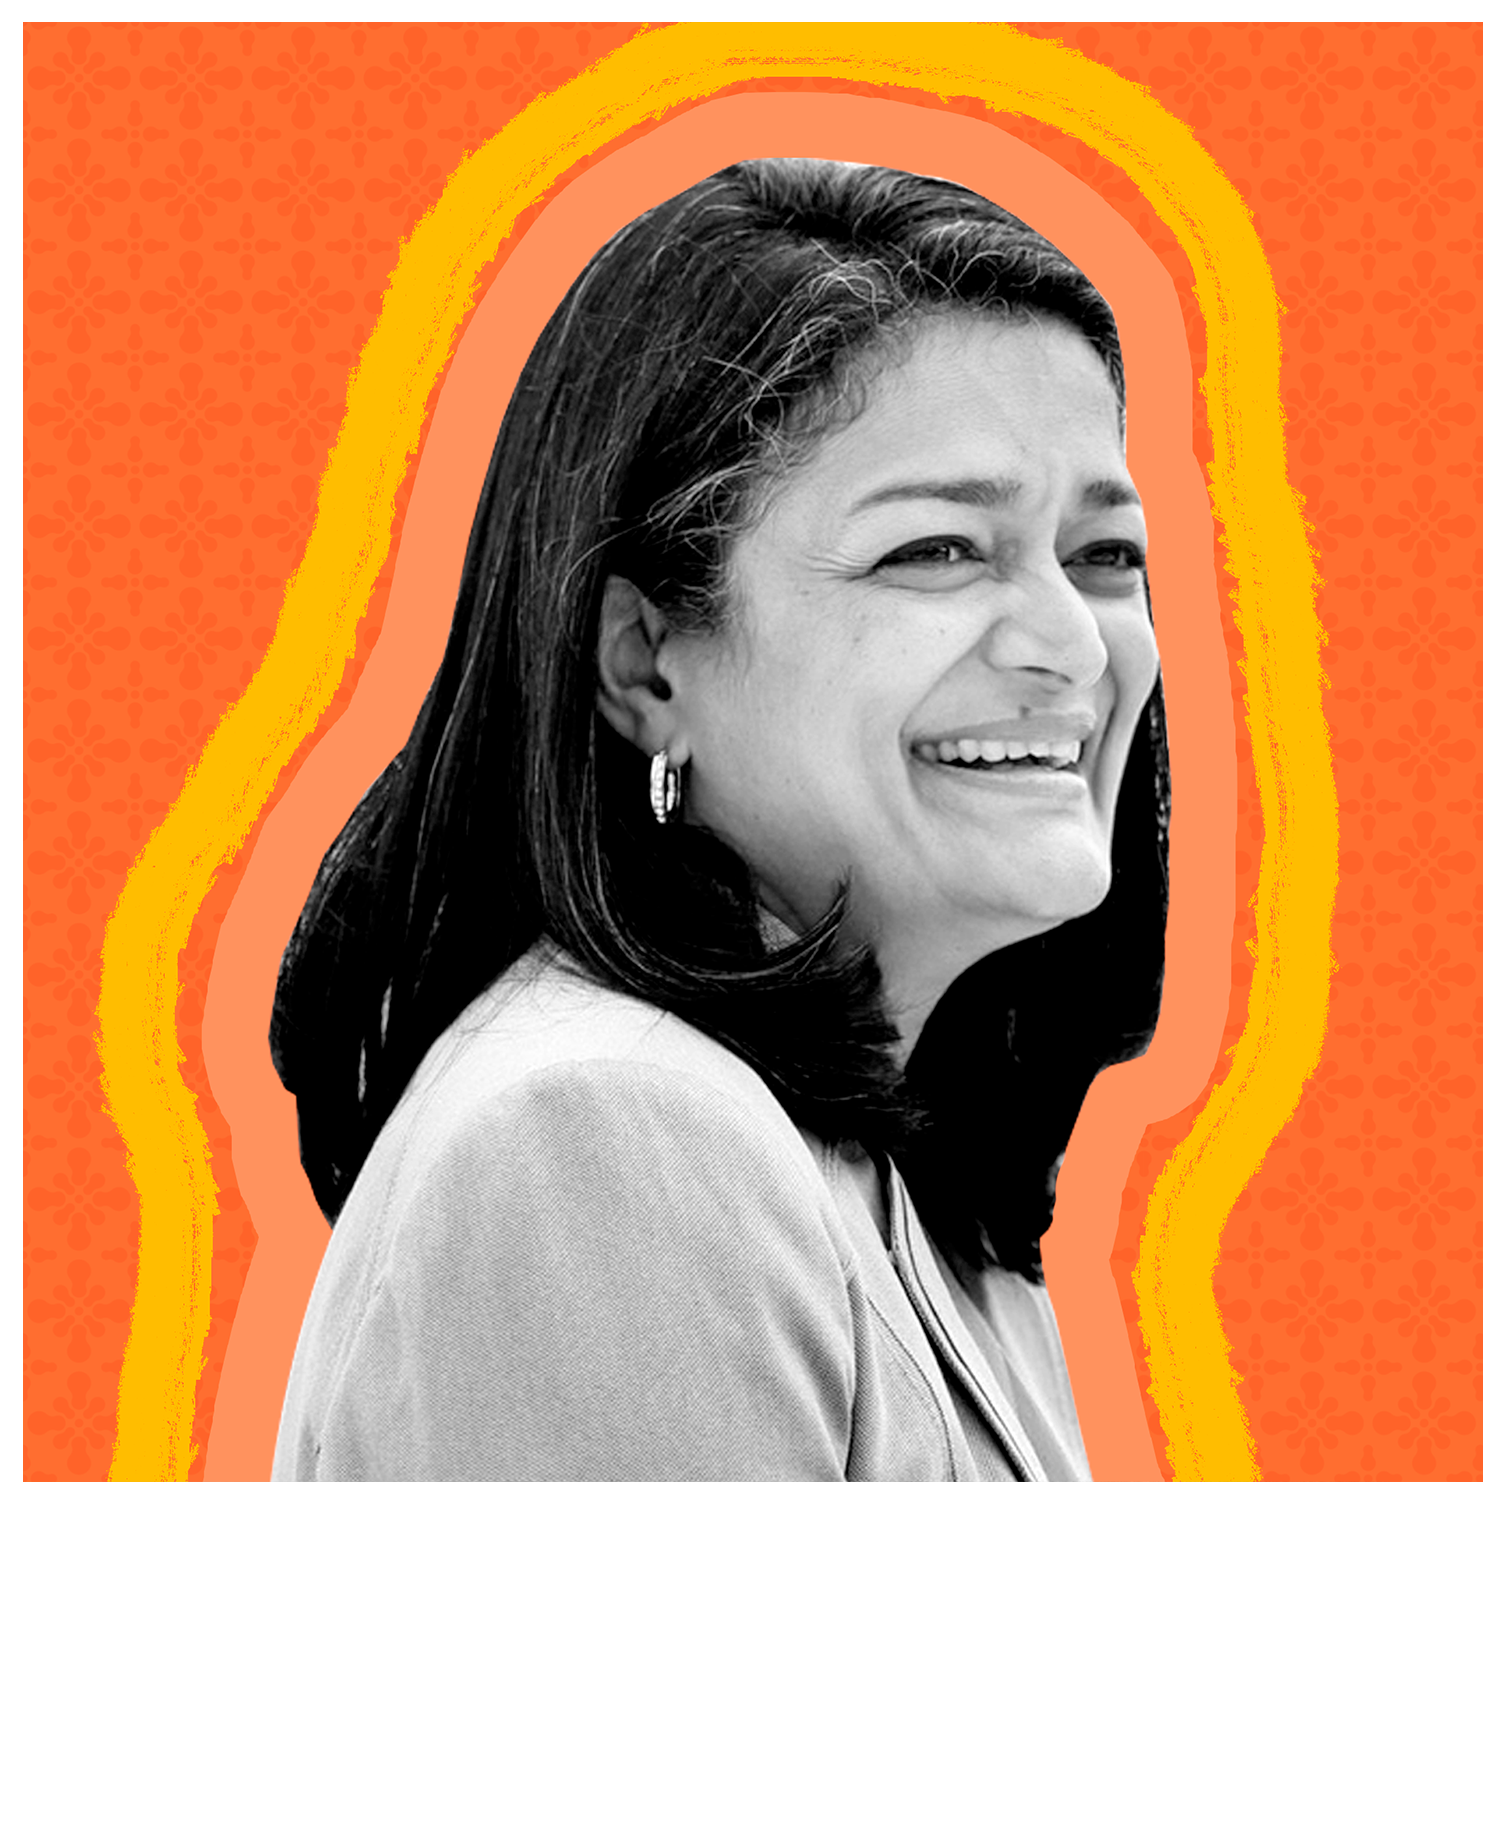 08262019---UWDA-Endorsement-Graphic-PramilaJayapal-Slide-v2